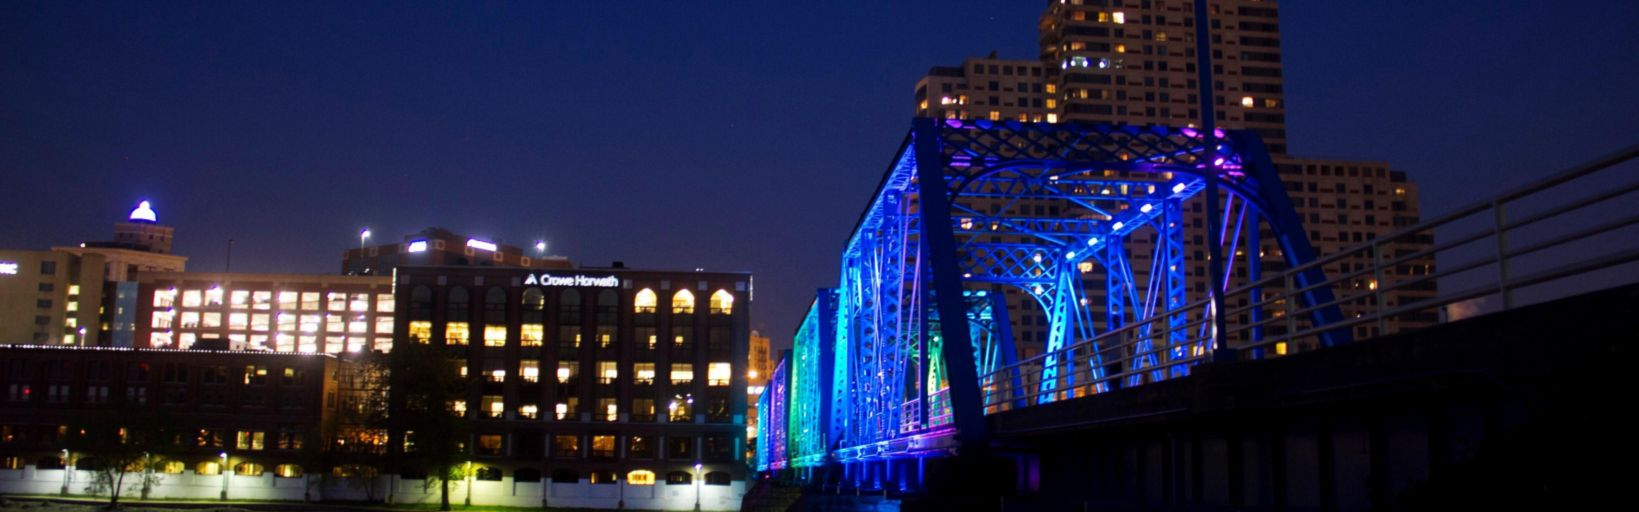 Our Historic Blue Bridge Is A Short Walk From The Hotel